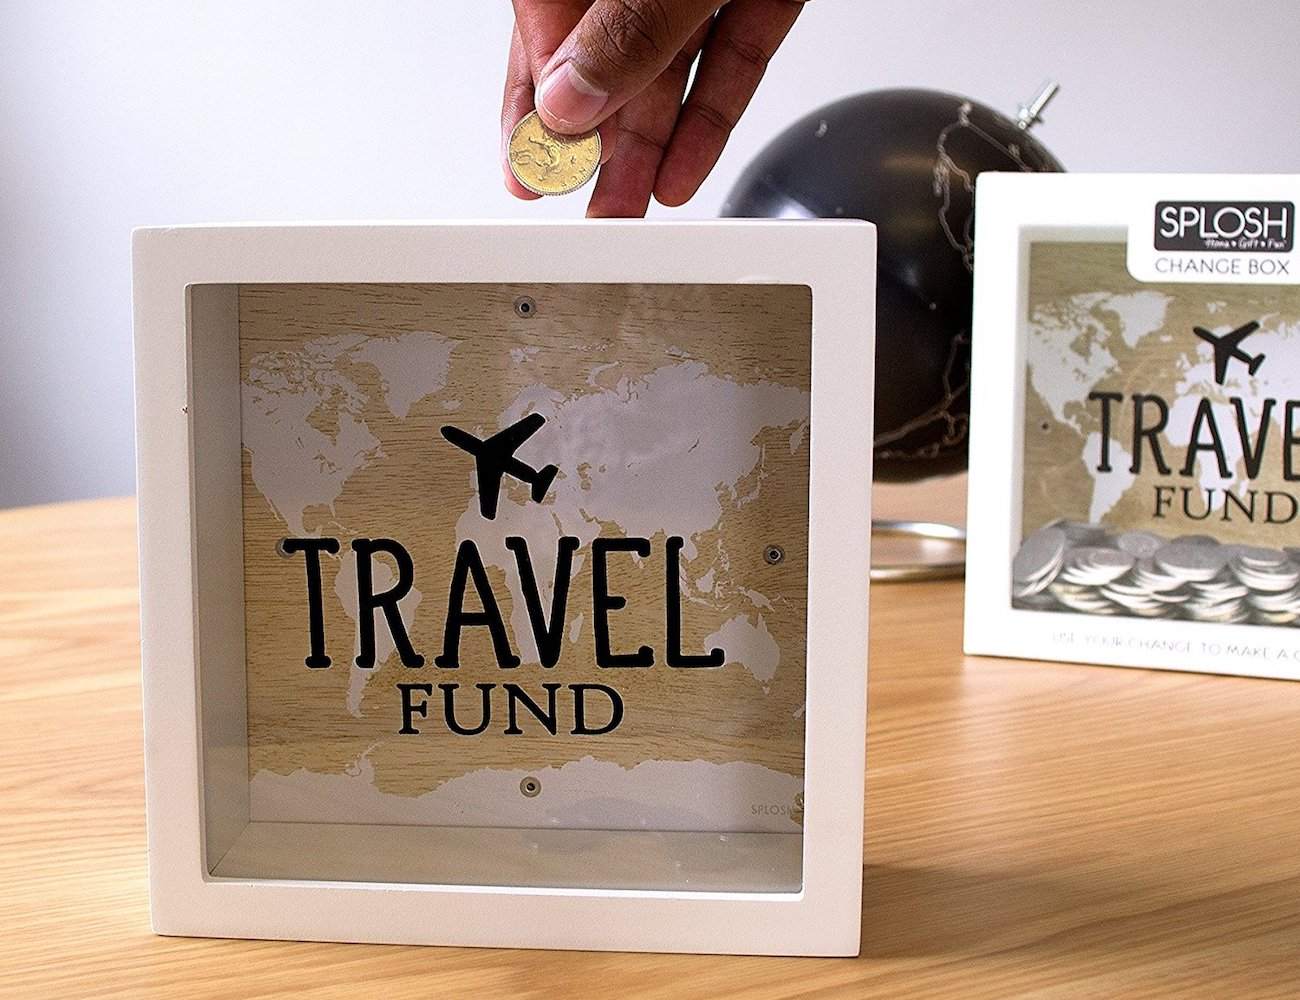 Spolsh Travel Fund Change Box